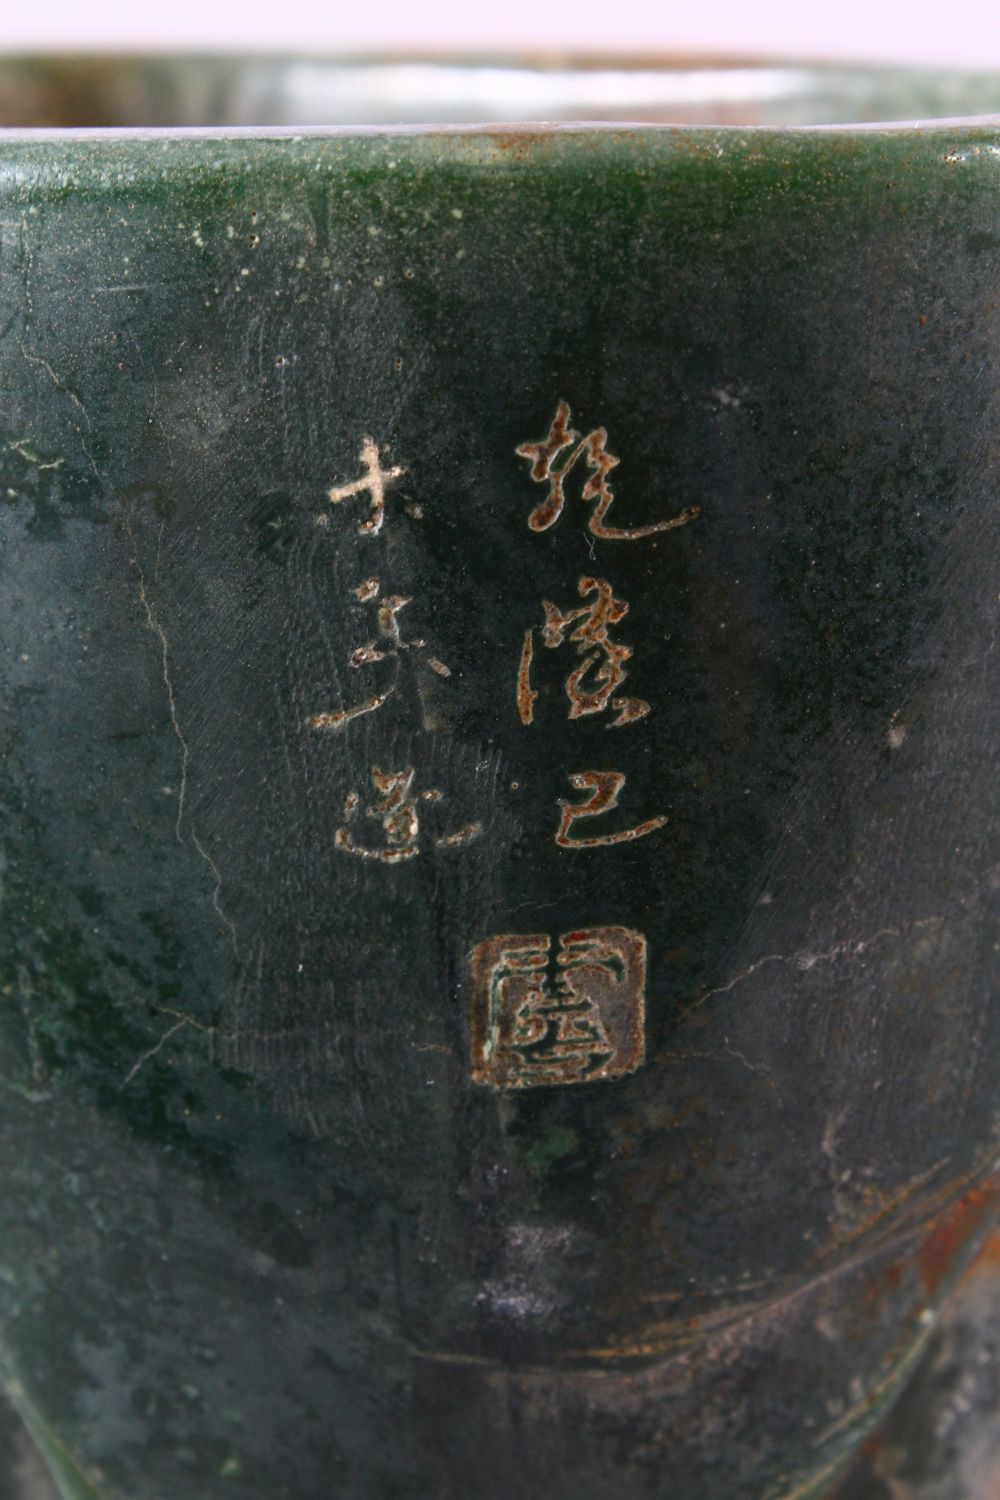 A CHINESE GREEN HARDSTONE BRUSH POT, carved with figures and trees, calligraphy, 15.5cm high. - Image 5 of 7